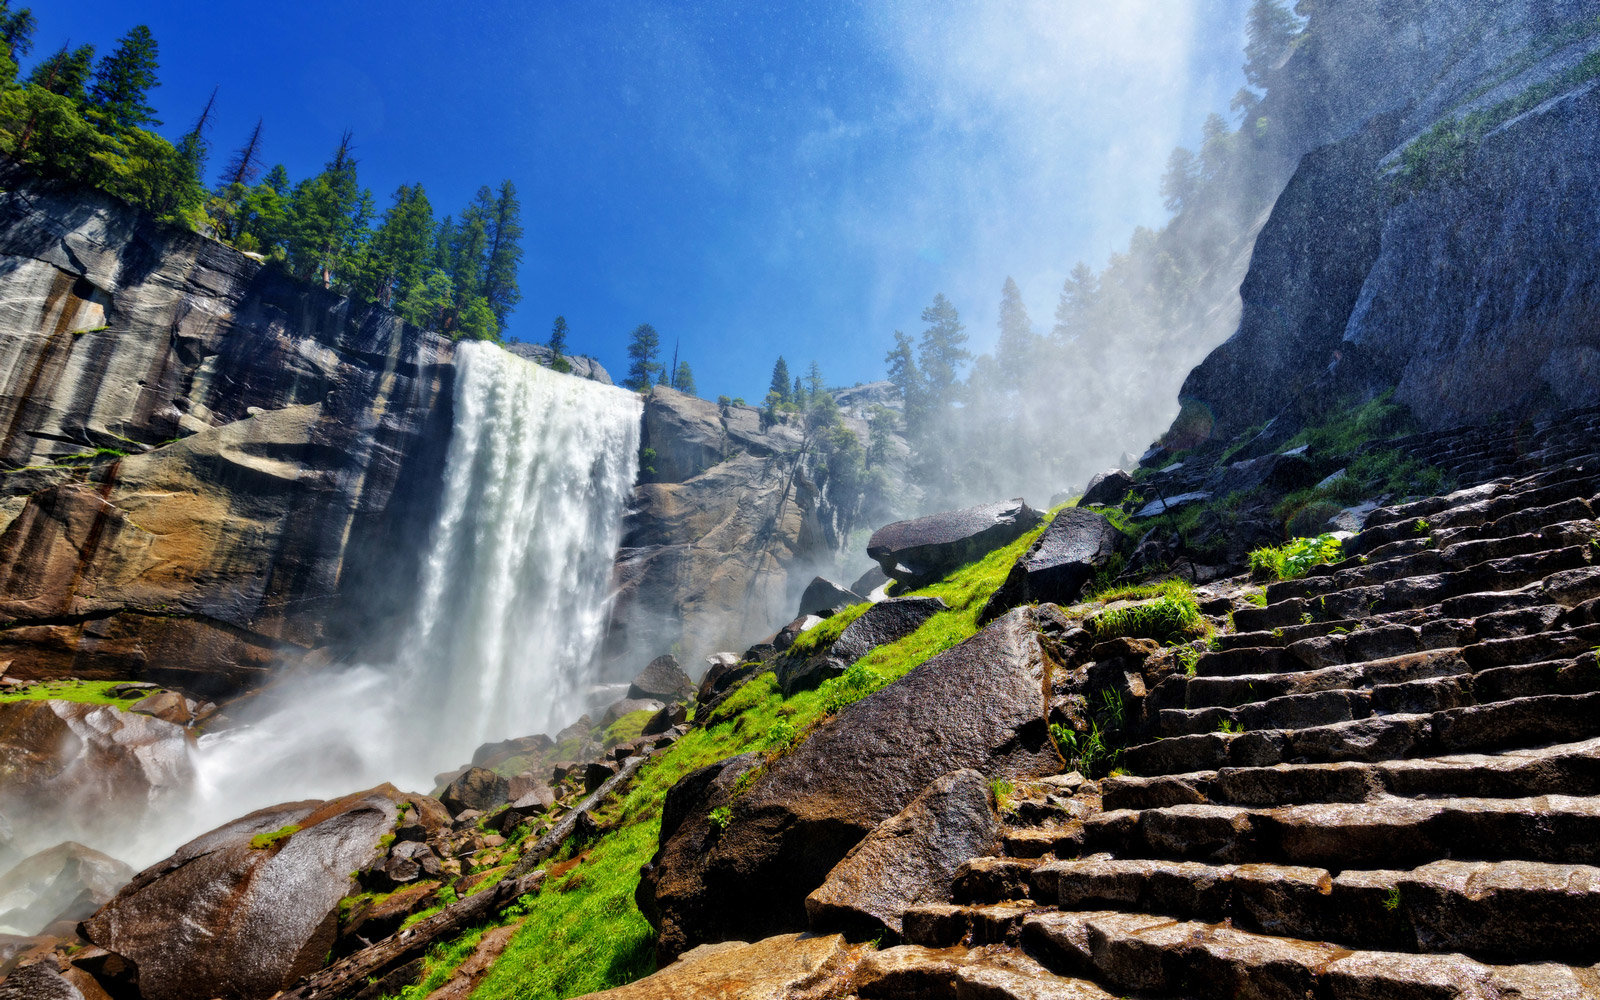 Heavy spray from Vernal Falls along the Mist Trail in early summer, Yosemite National Park